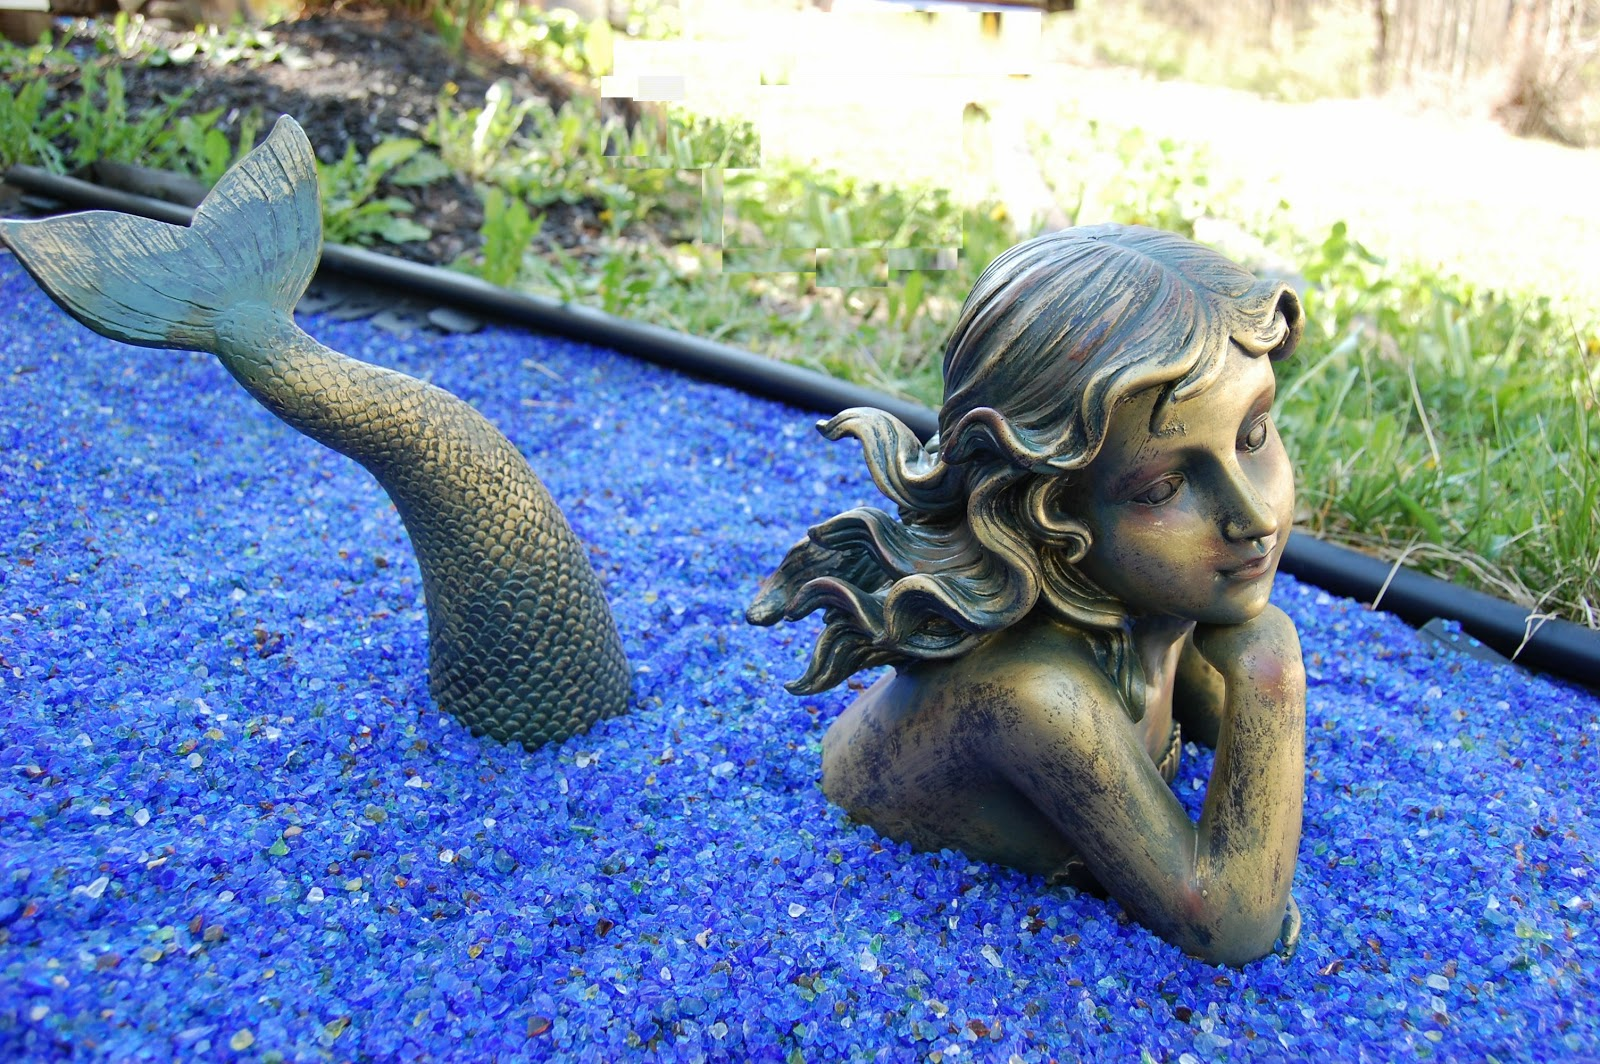 mermaid_glass.jpg